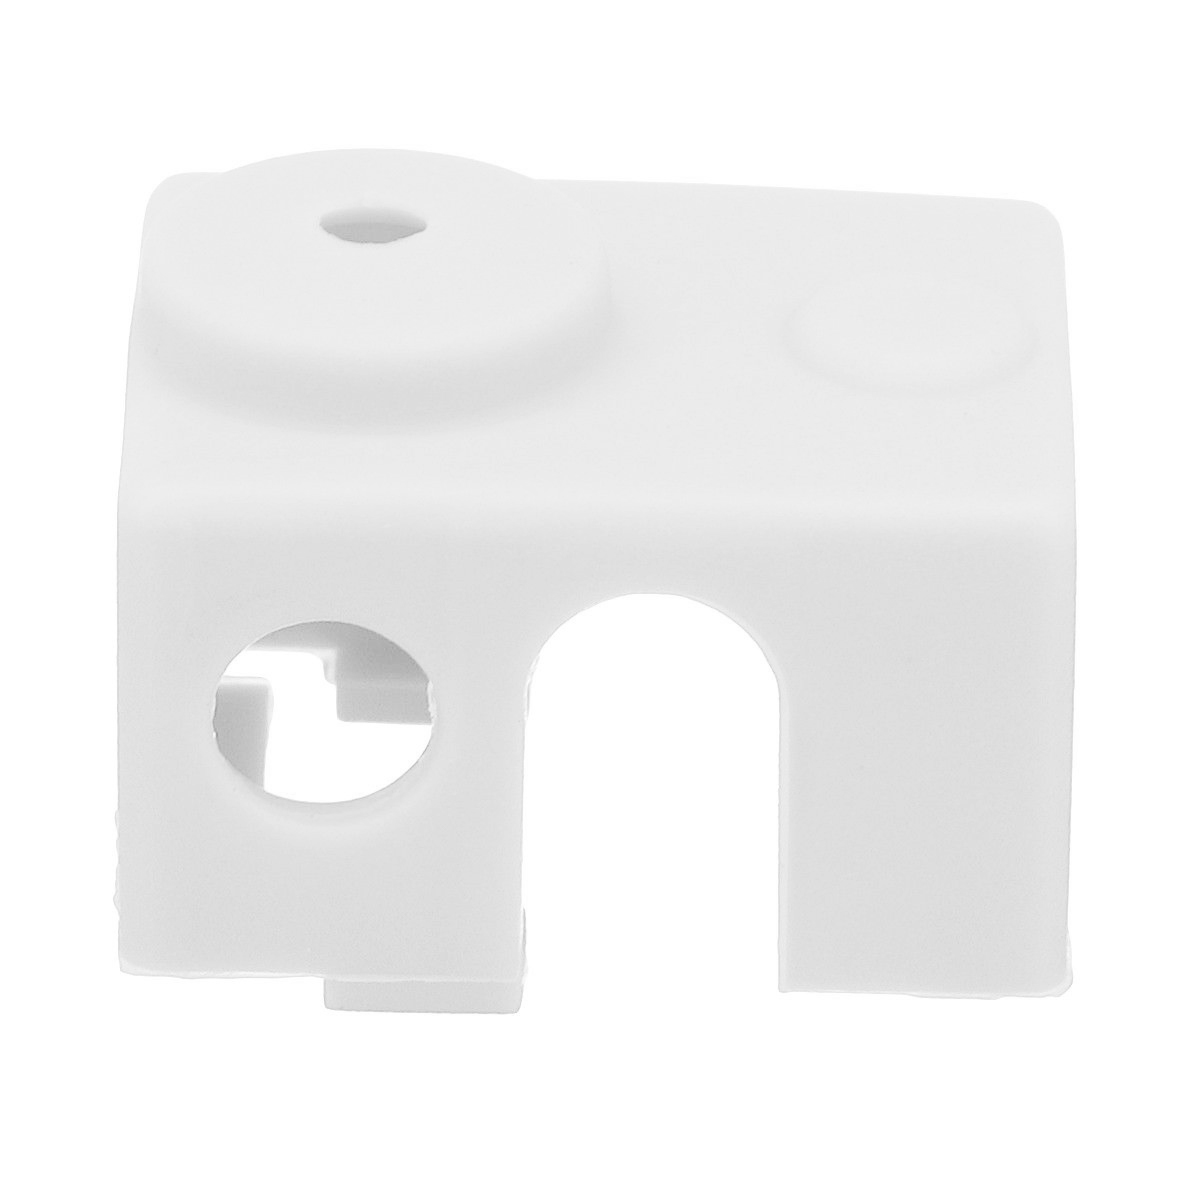 Image 4 - For V6 Silicone Case Box sleeve For V6 PT100 Hot End Cover 3D Printer Parts 3d Sensor Hotend Trianglelab Bltouch Titan Extruder-in 3D Printer Parts & Accessories from Computer & Office